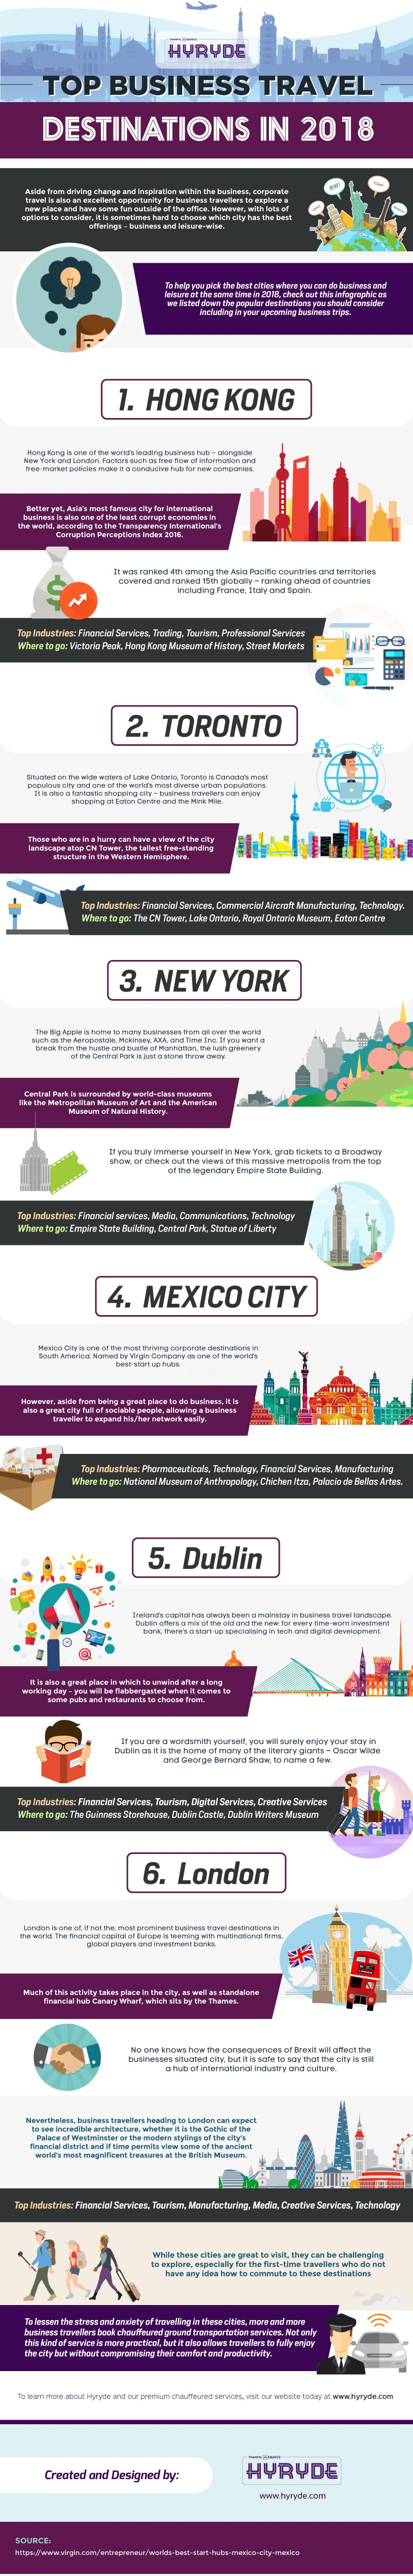 Business cum Leisure Travel Destinations You Must Visit in 2018 - Infographic